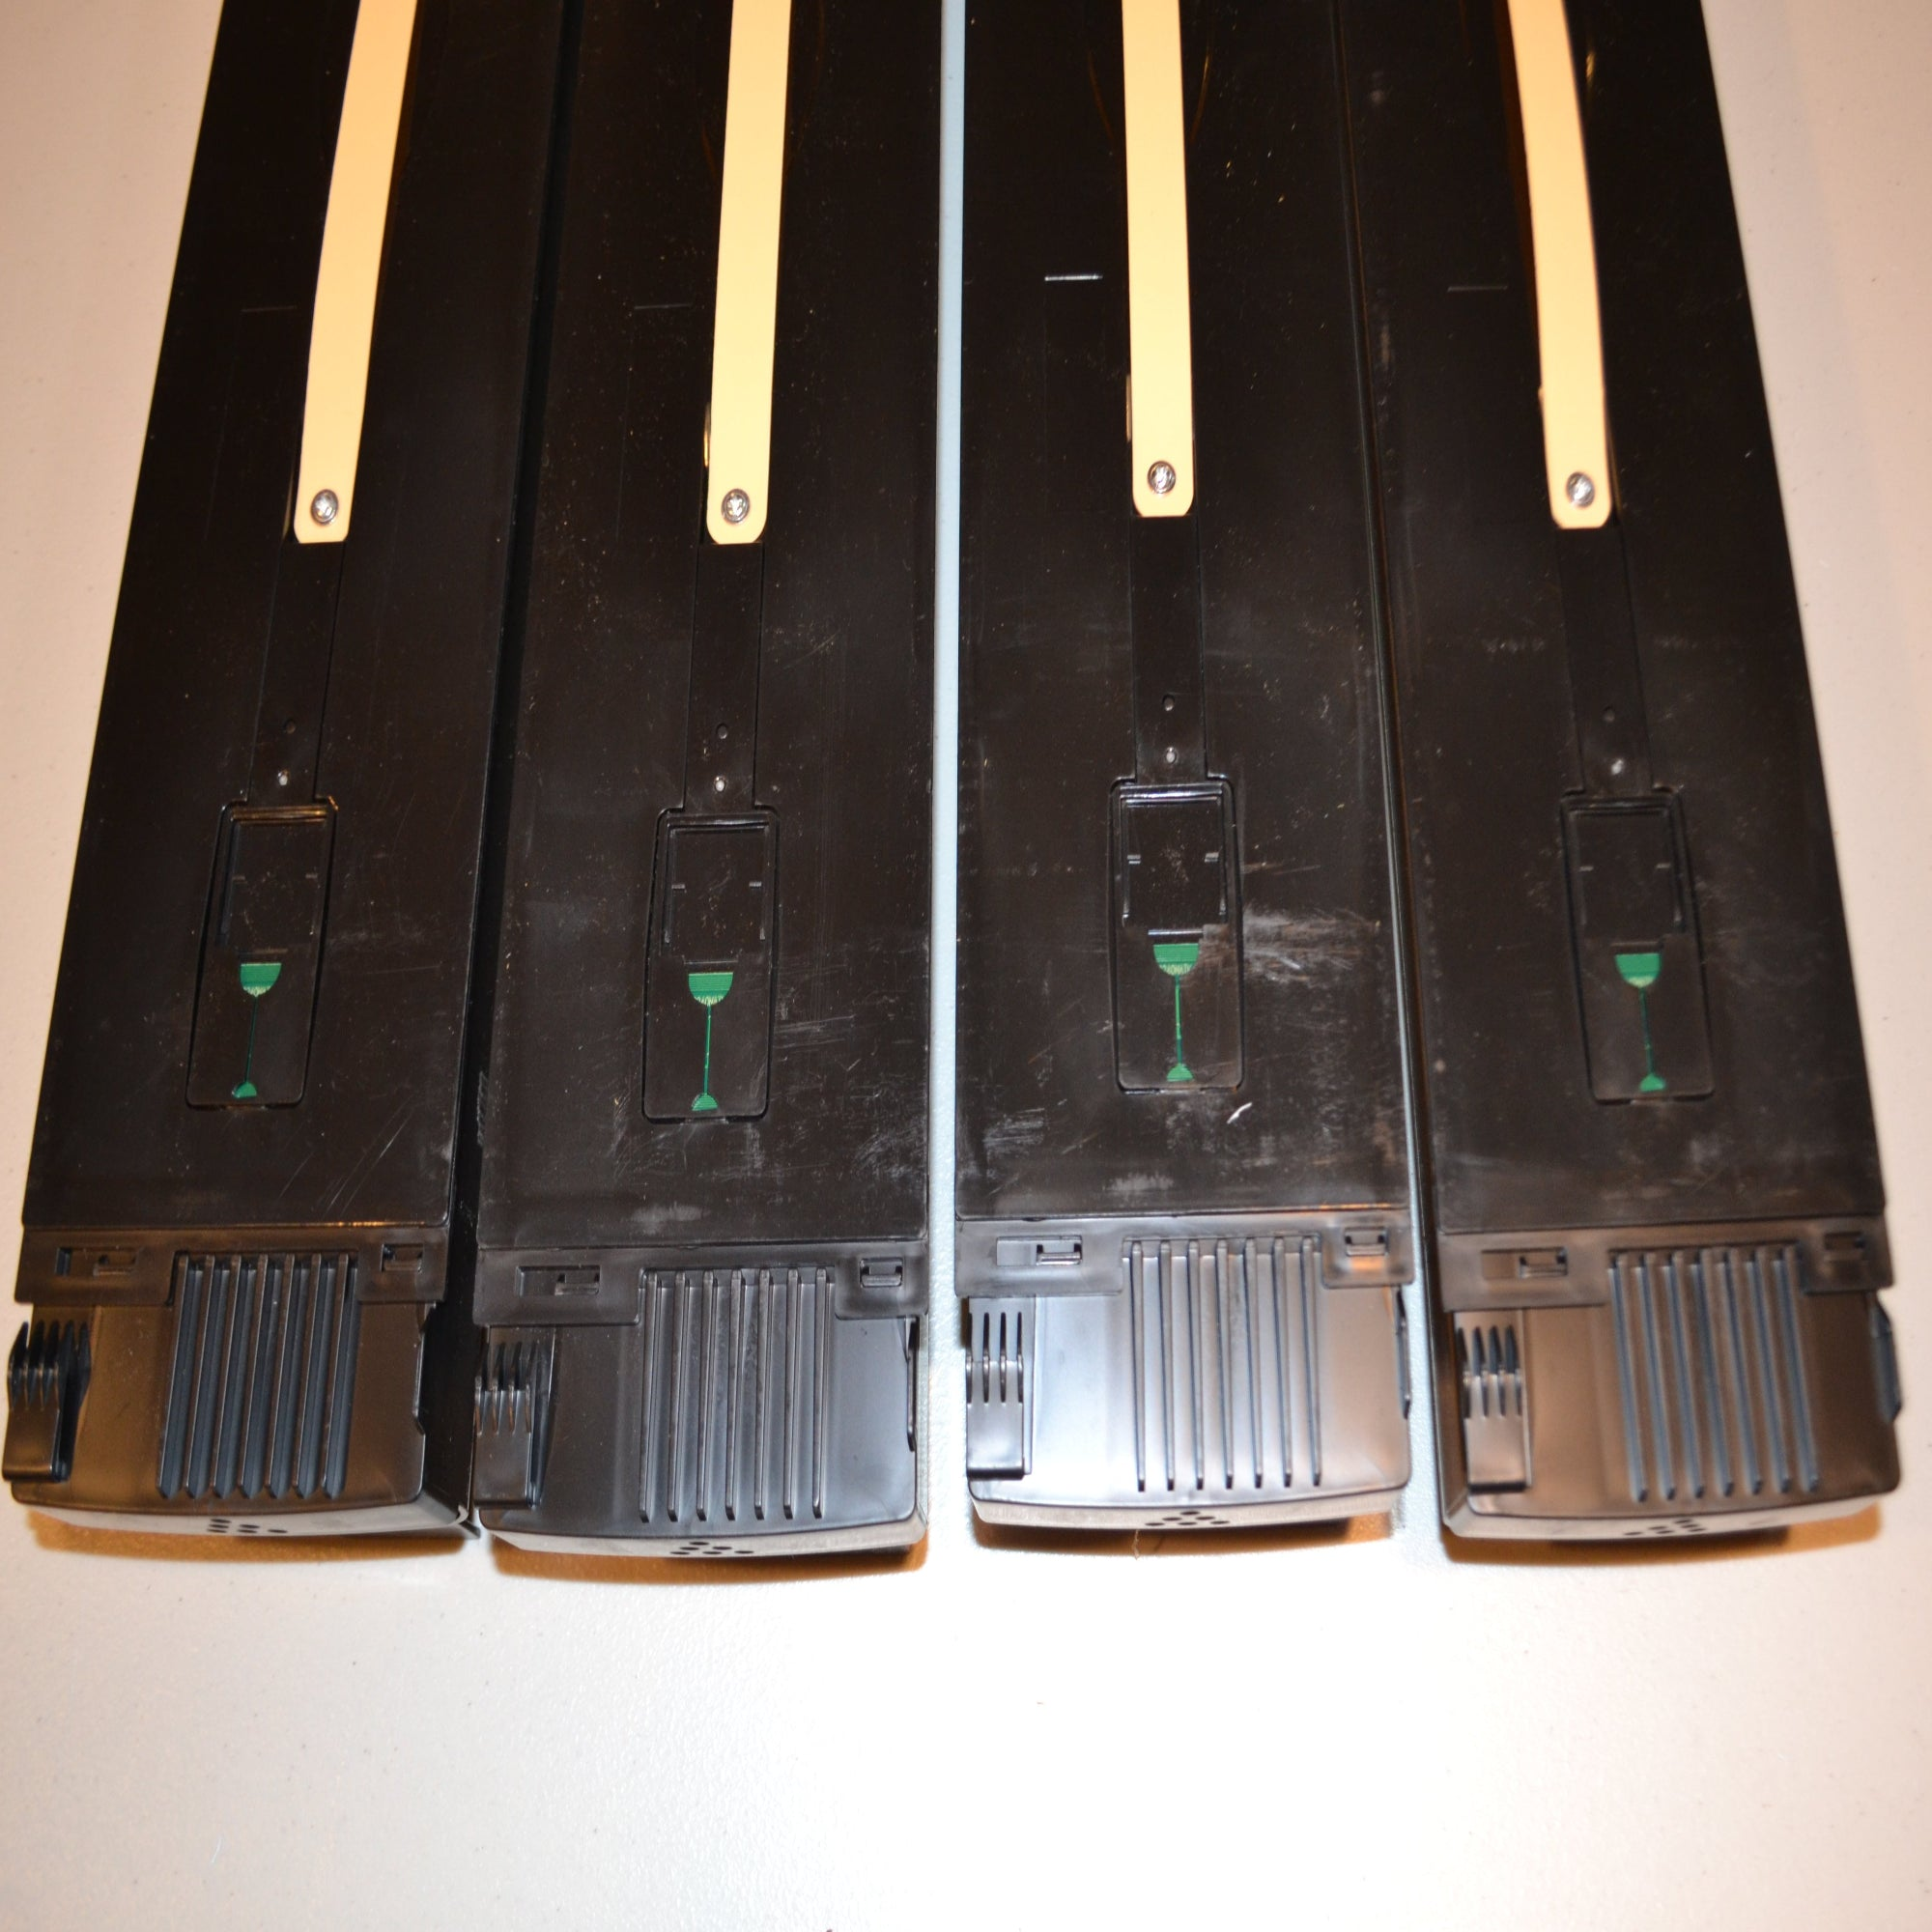 4 Pack Toner Cartridge DC250 7665 250 For Xerox Docucolor 240 242 260 BLACK - SOP-TECHNOLOGIES, INC.